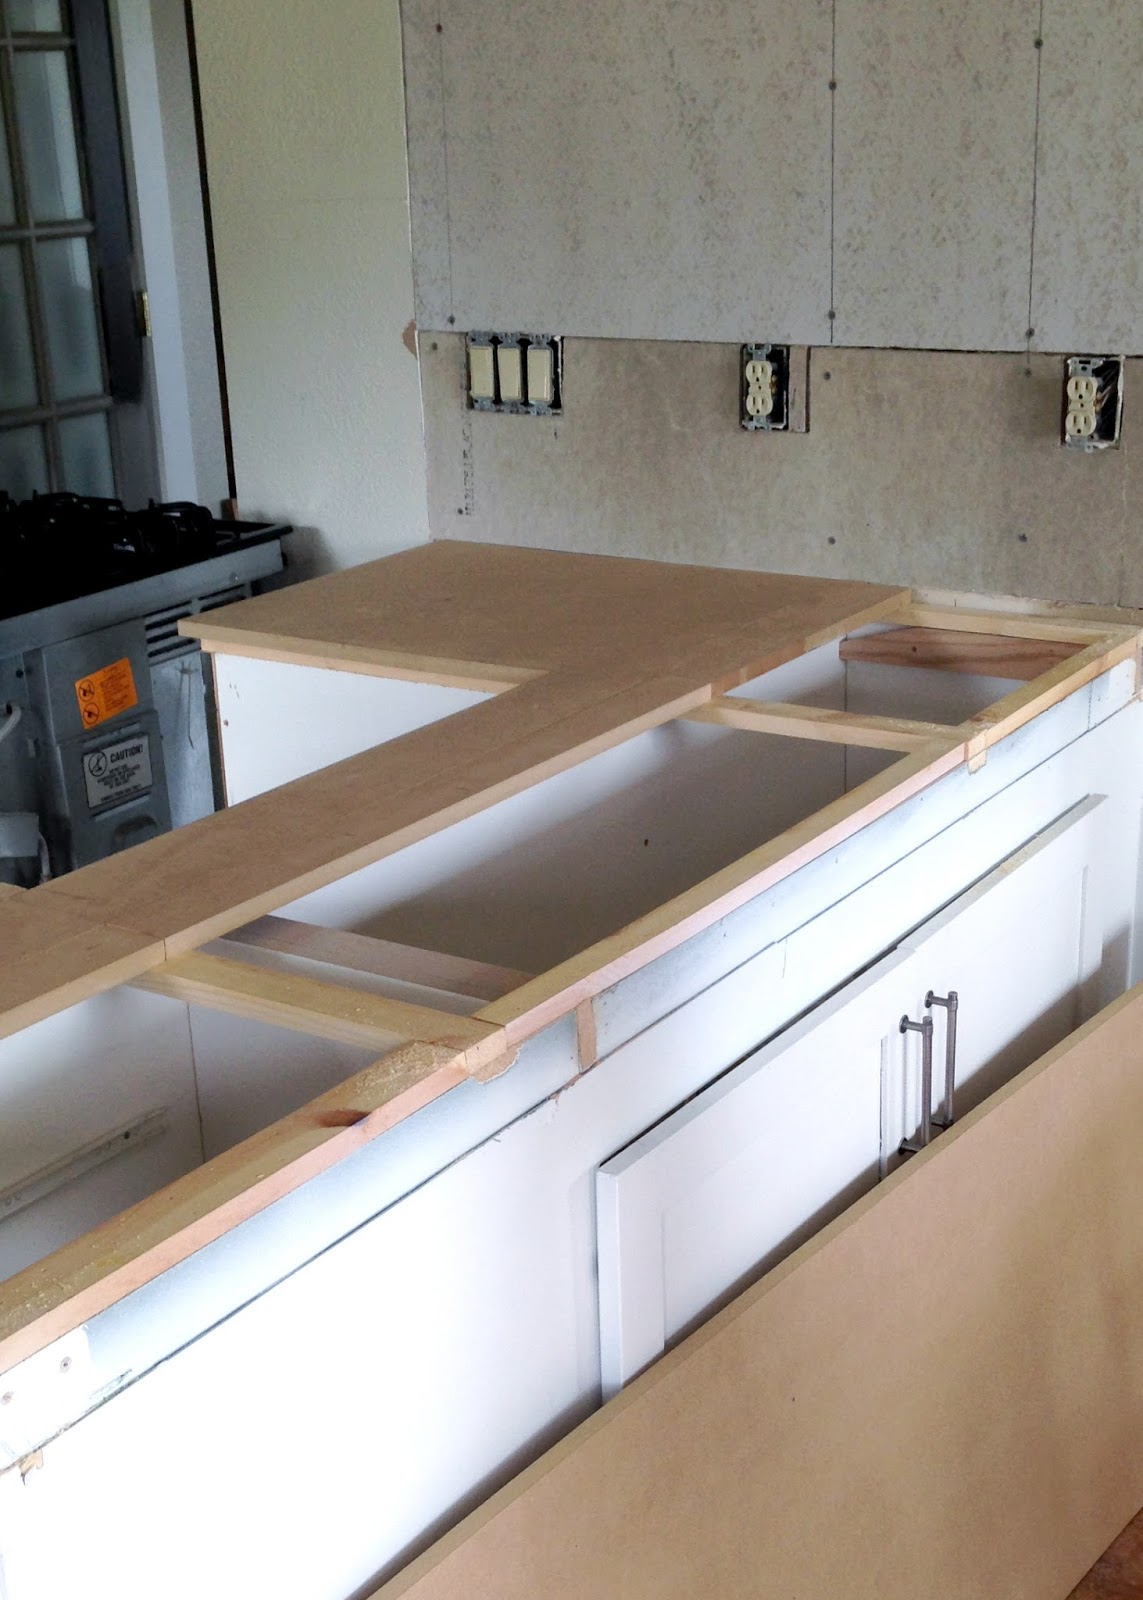 plywood countertop kitchen underneath